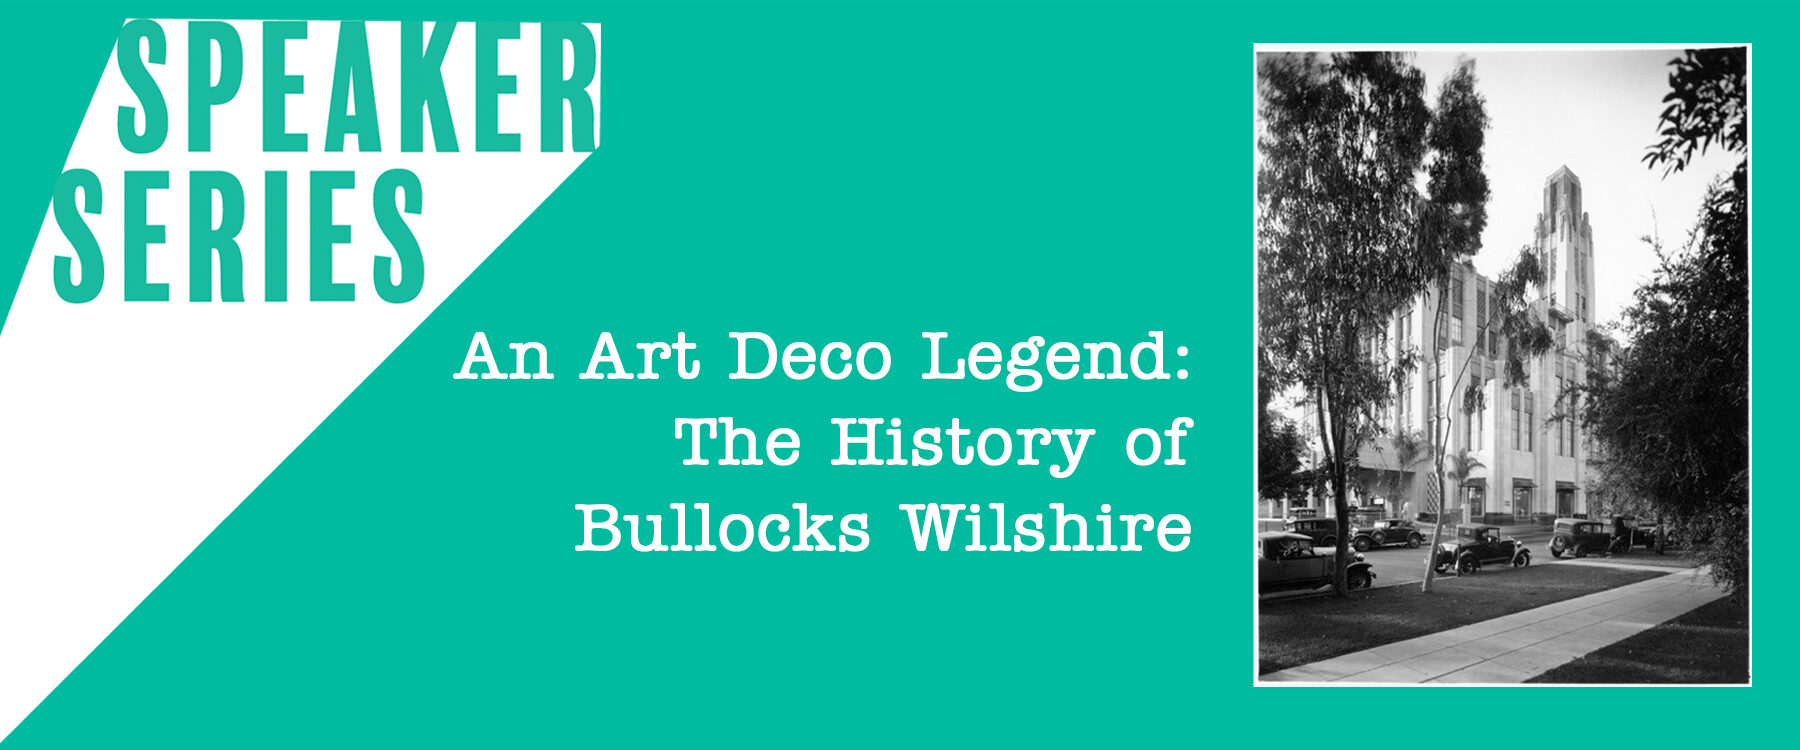 Speaker Series: An Art Deco Legend: The History of Bullocks Wilshire featuring black and white photo of Bullocks Wilshire